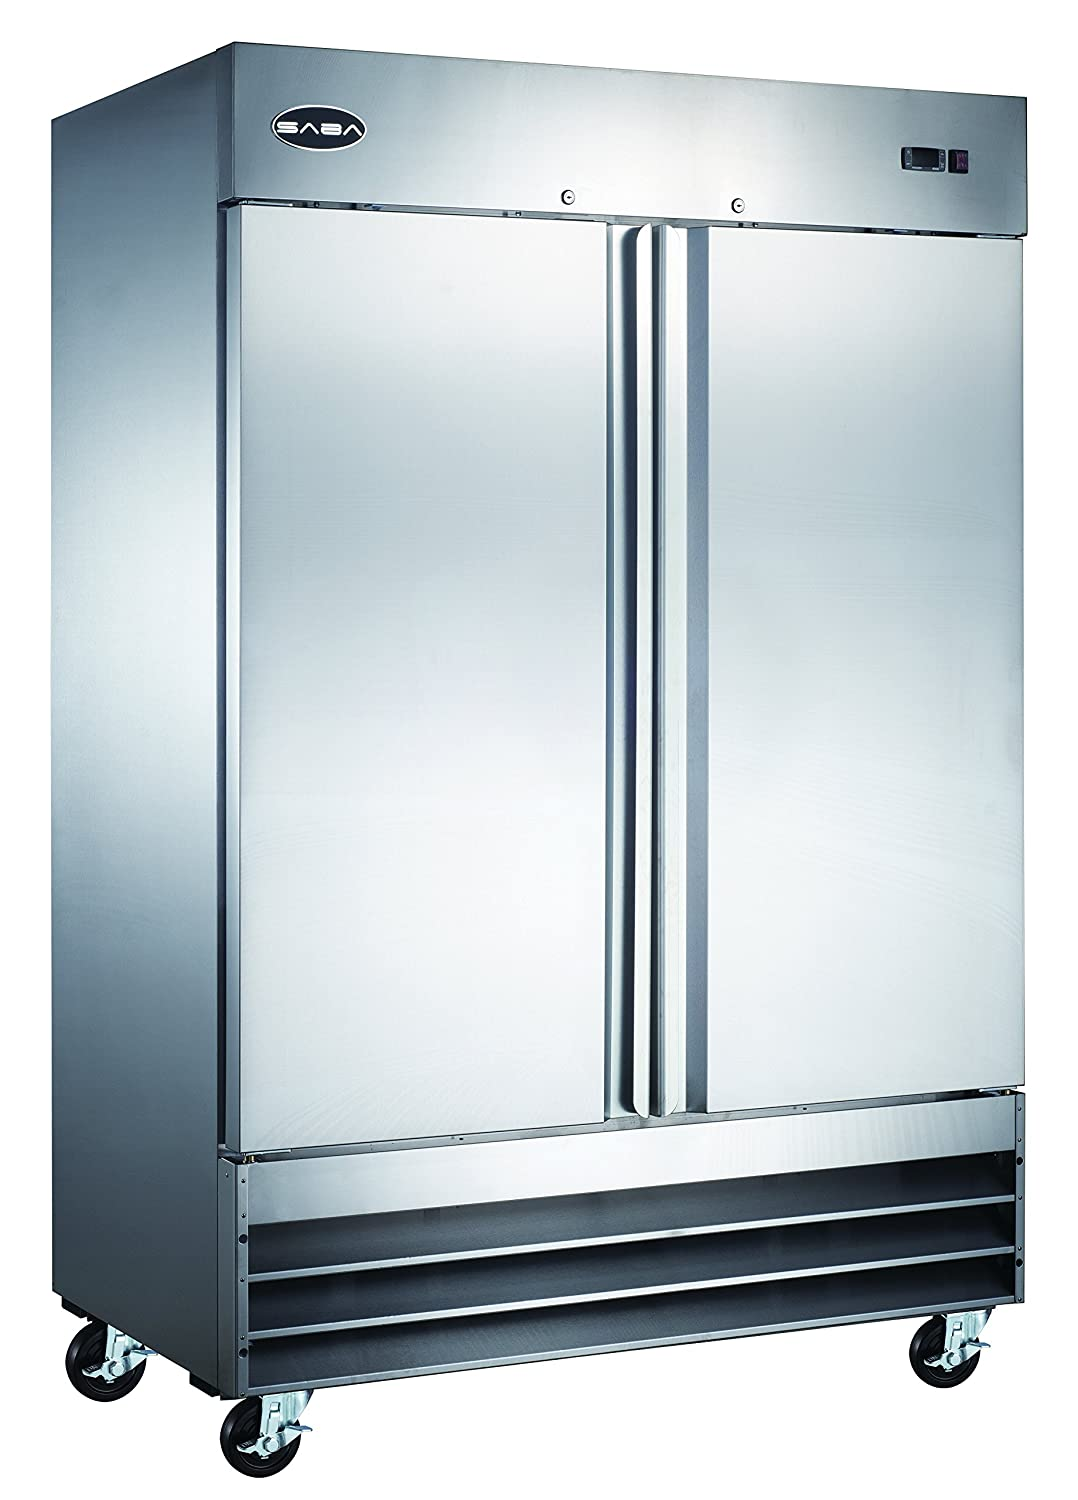 SABA Heavy Duty Commercial Two Solid Door Reach-In Refrigerator